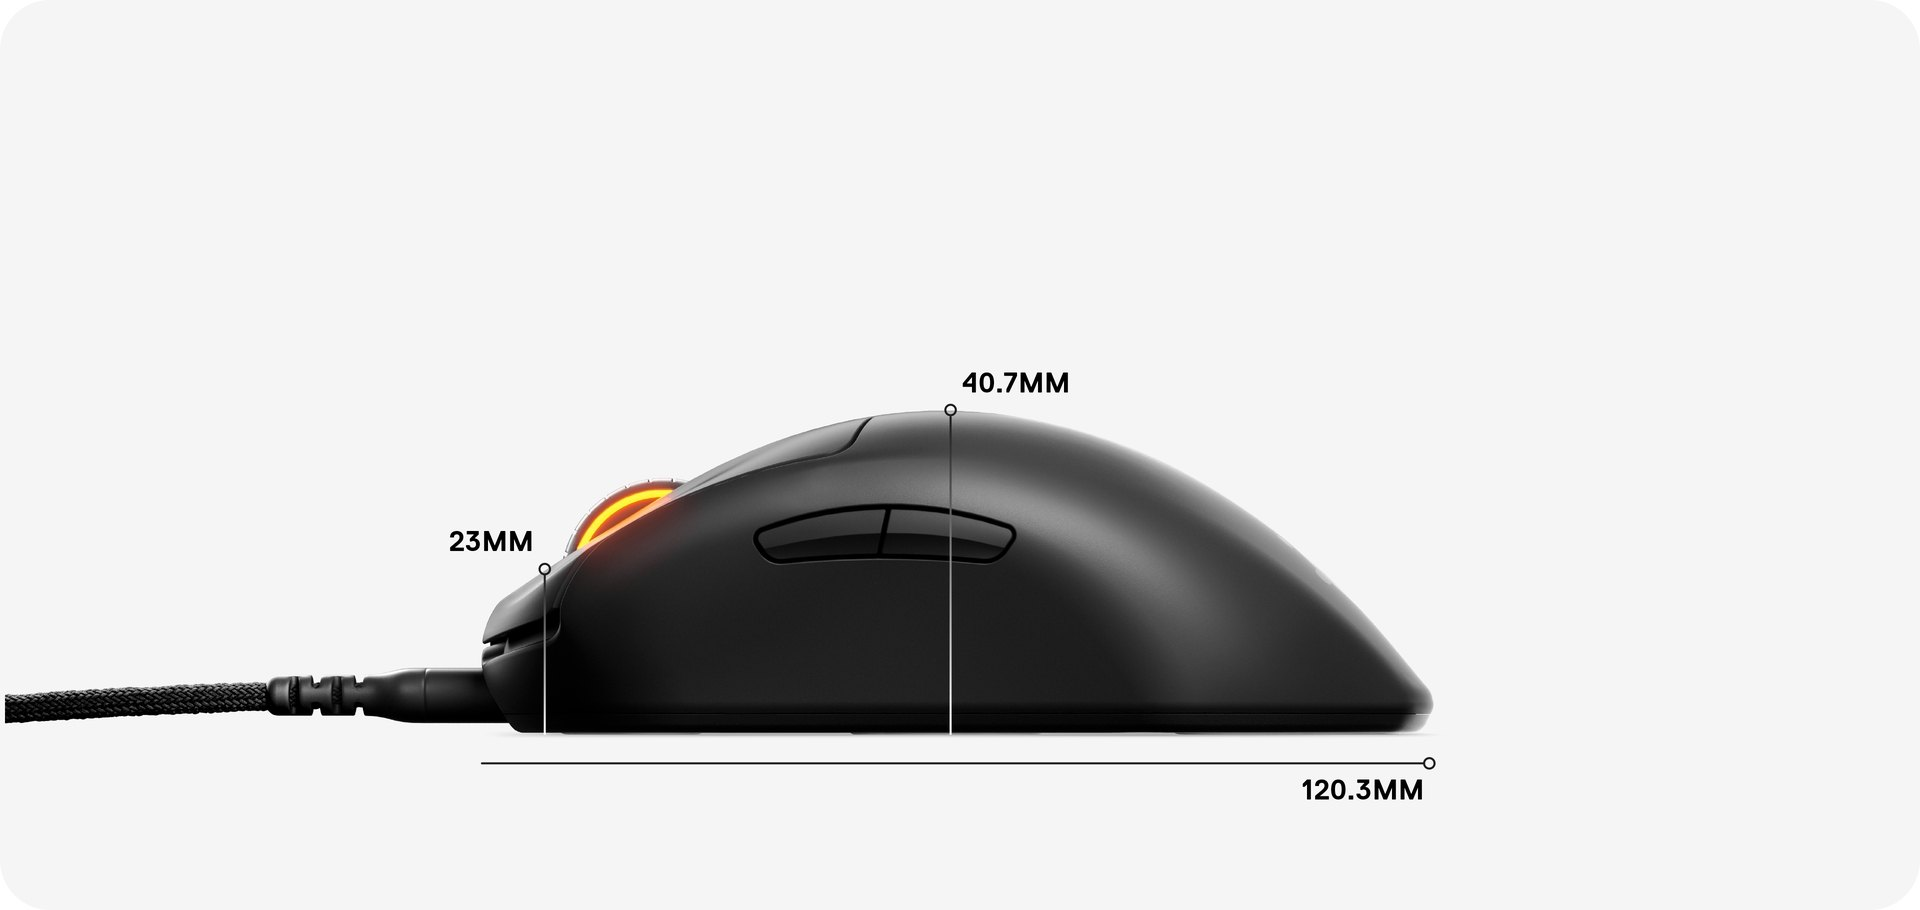 Dimensions for the mouse: 120,3 MM in length, 40,7 MM from palm rest to base, and 23 MM from scroll wheel to base.